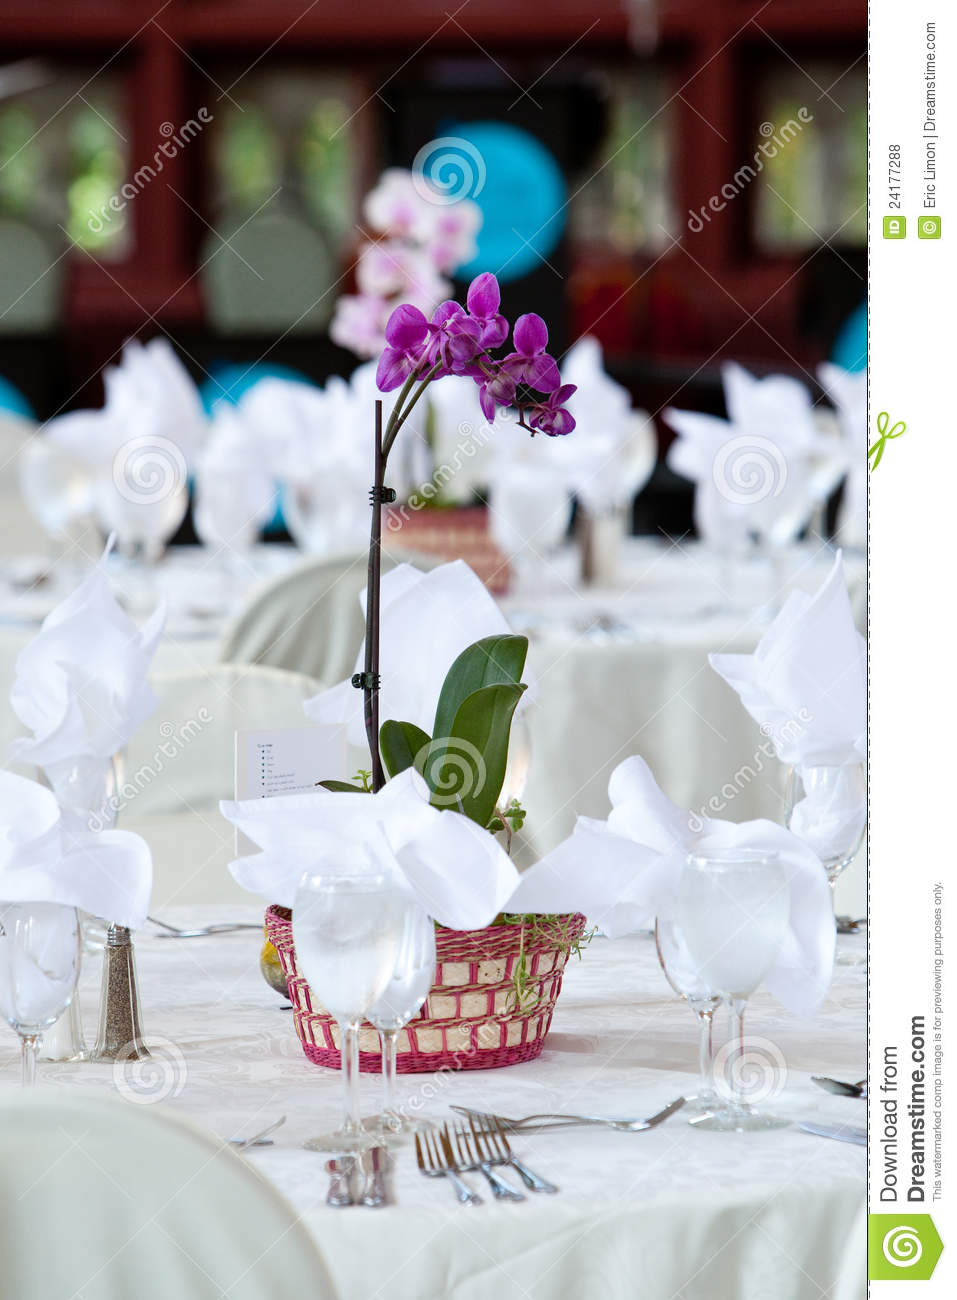 Orchid Centerpiece On Wedding Tables Royalty Free Stock Photos - Image: 24177288